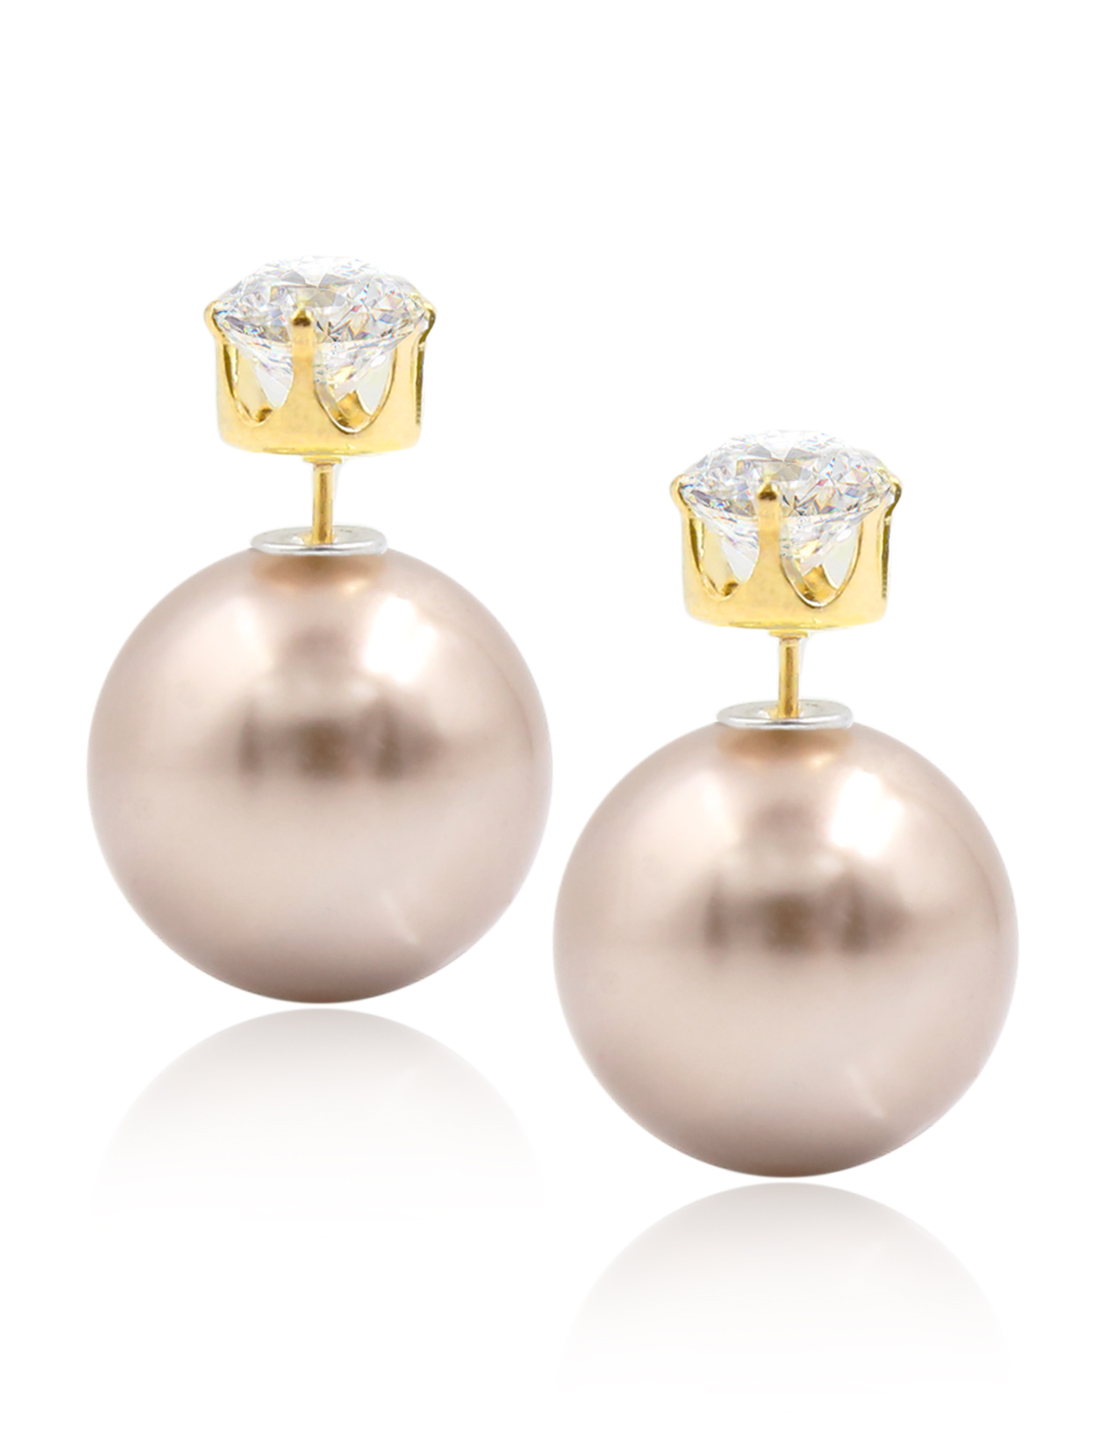 Fashion Women Elegant Double Sides Zircon Ball Earrings Ear Stud 1 Pair Coffee